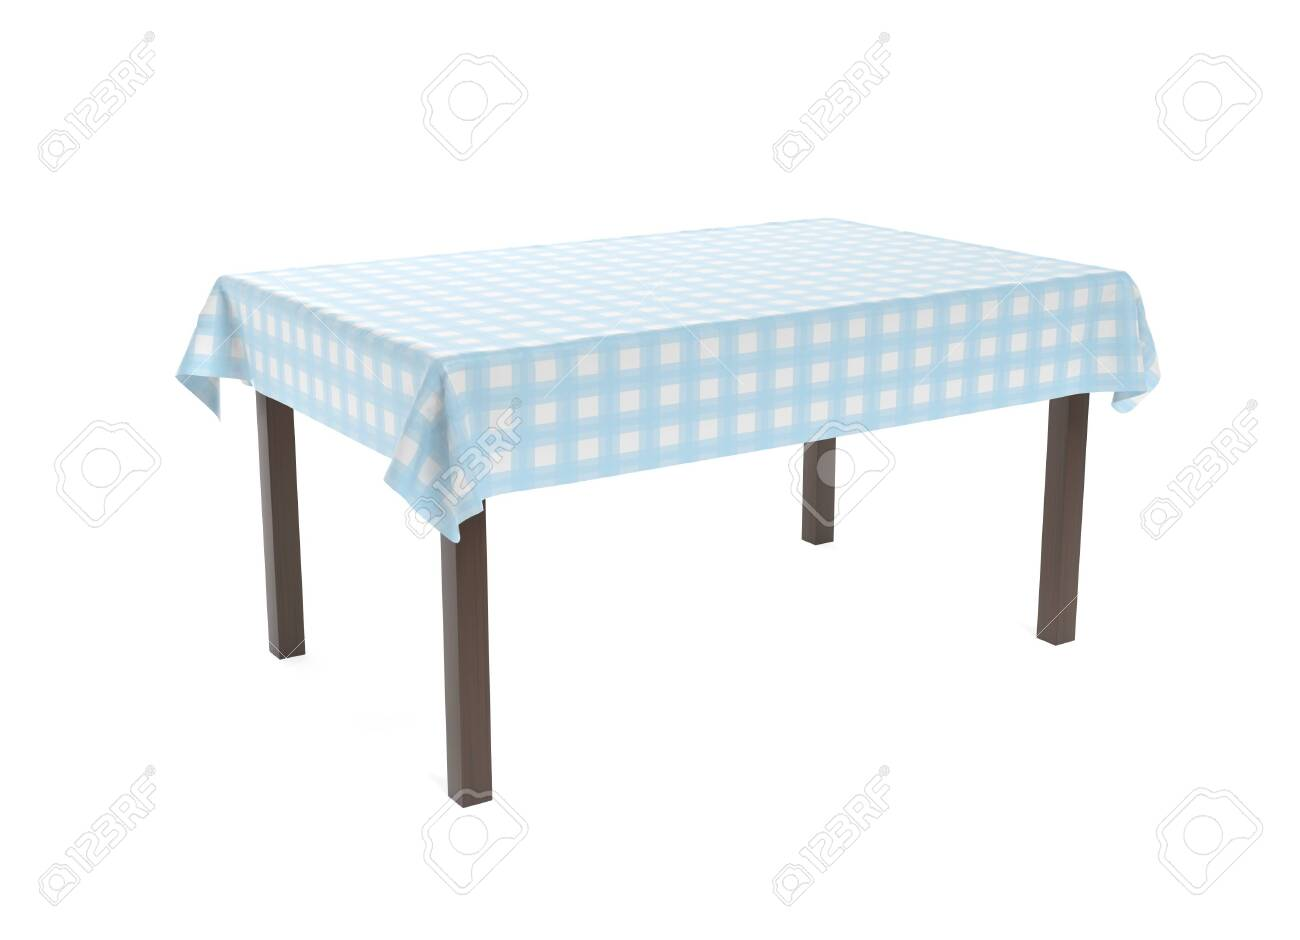 Table with blue tablecloth. 3d rendering illustration isolated on white background - 150521126